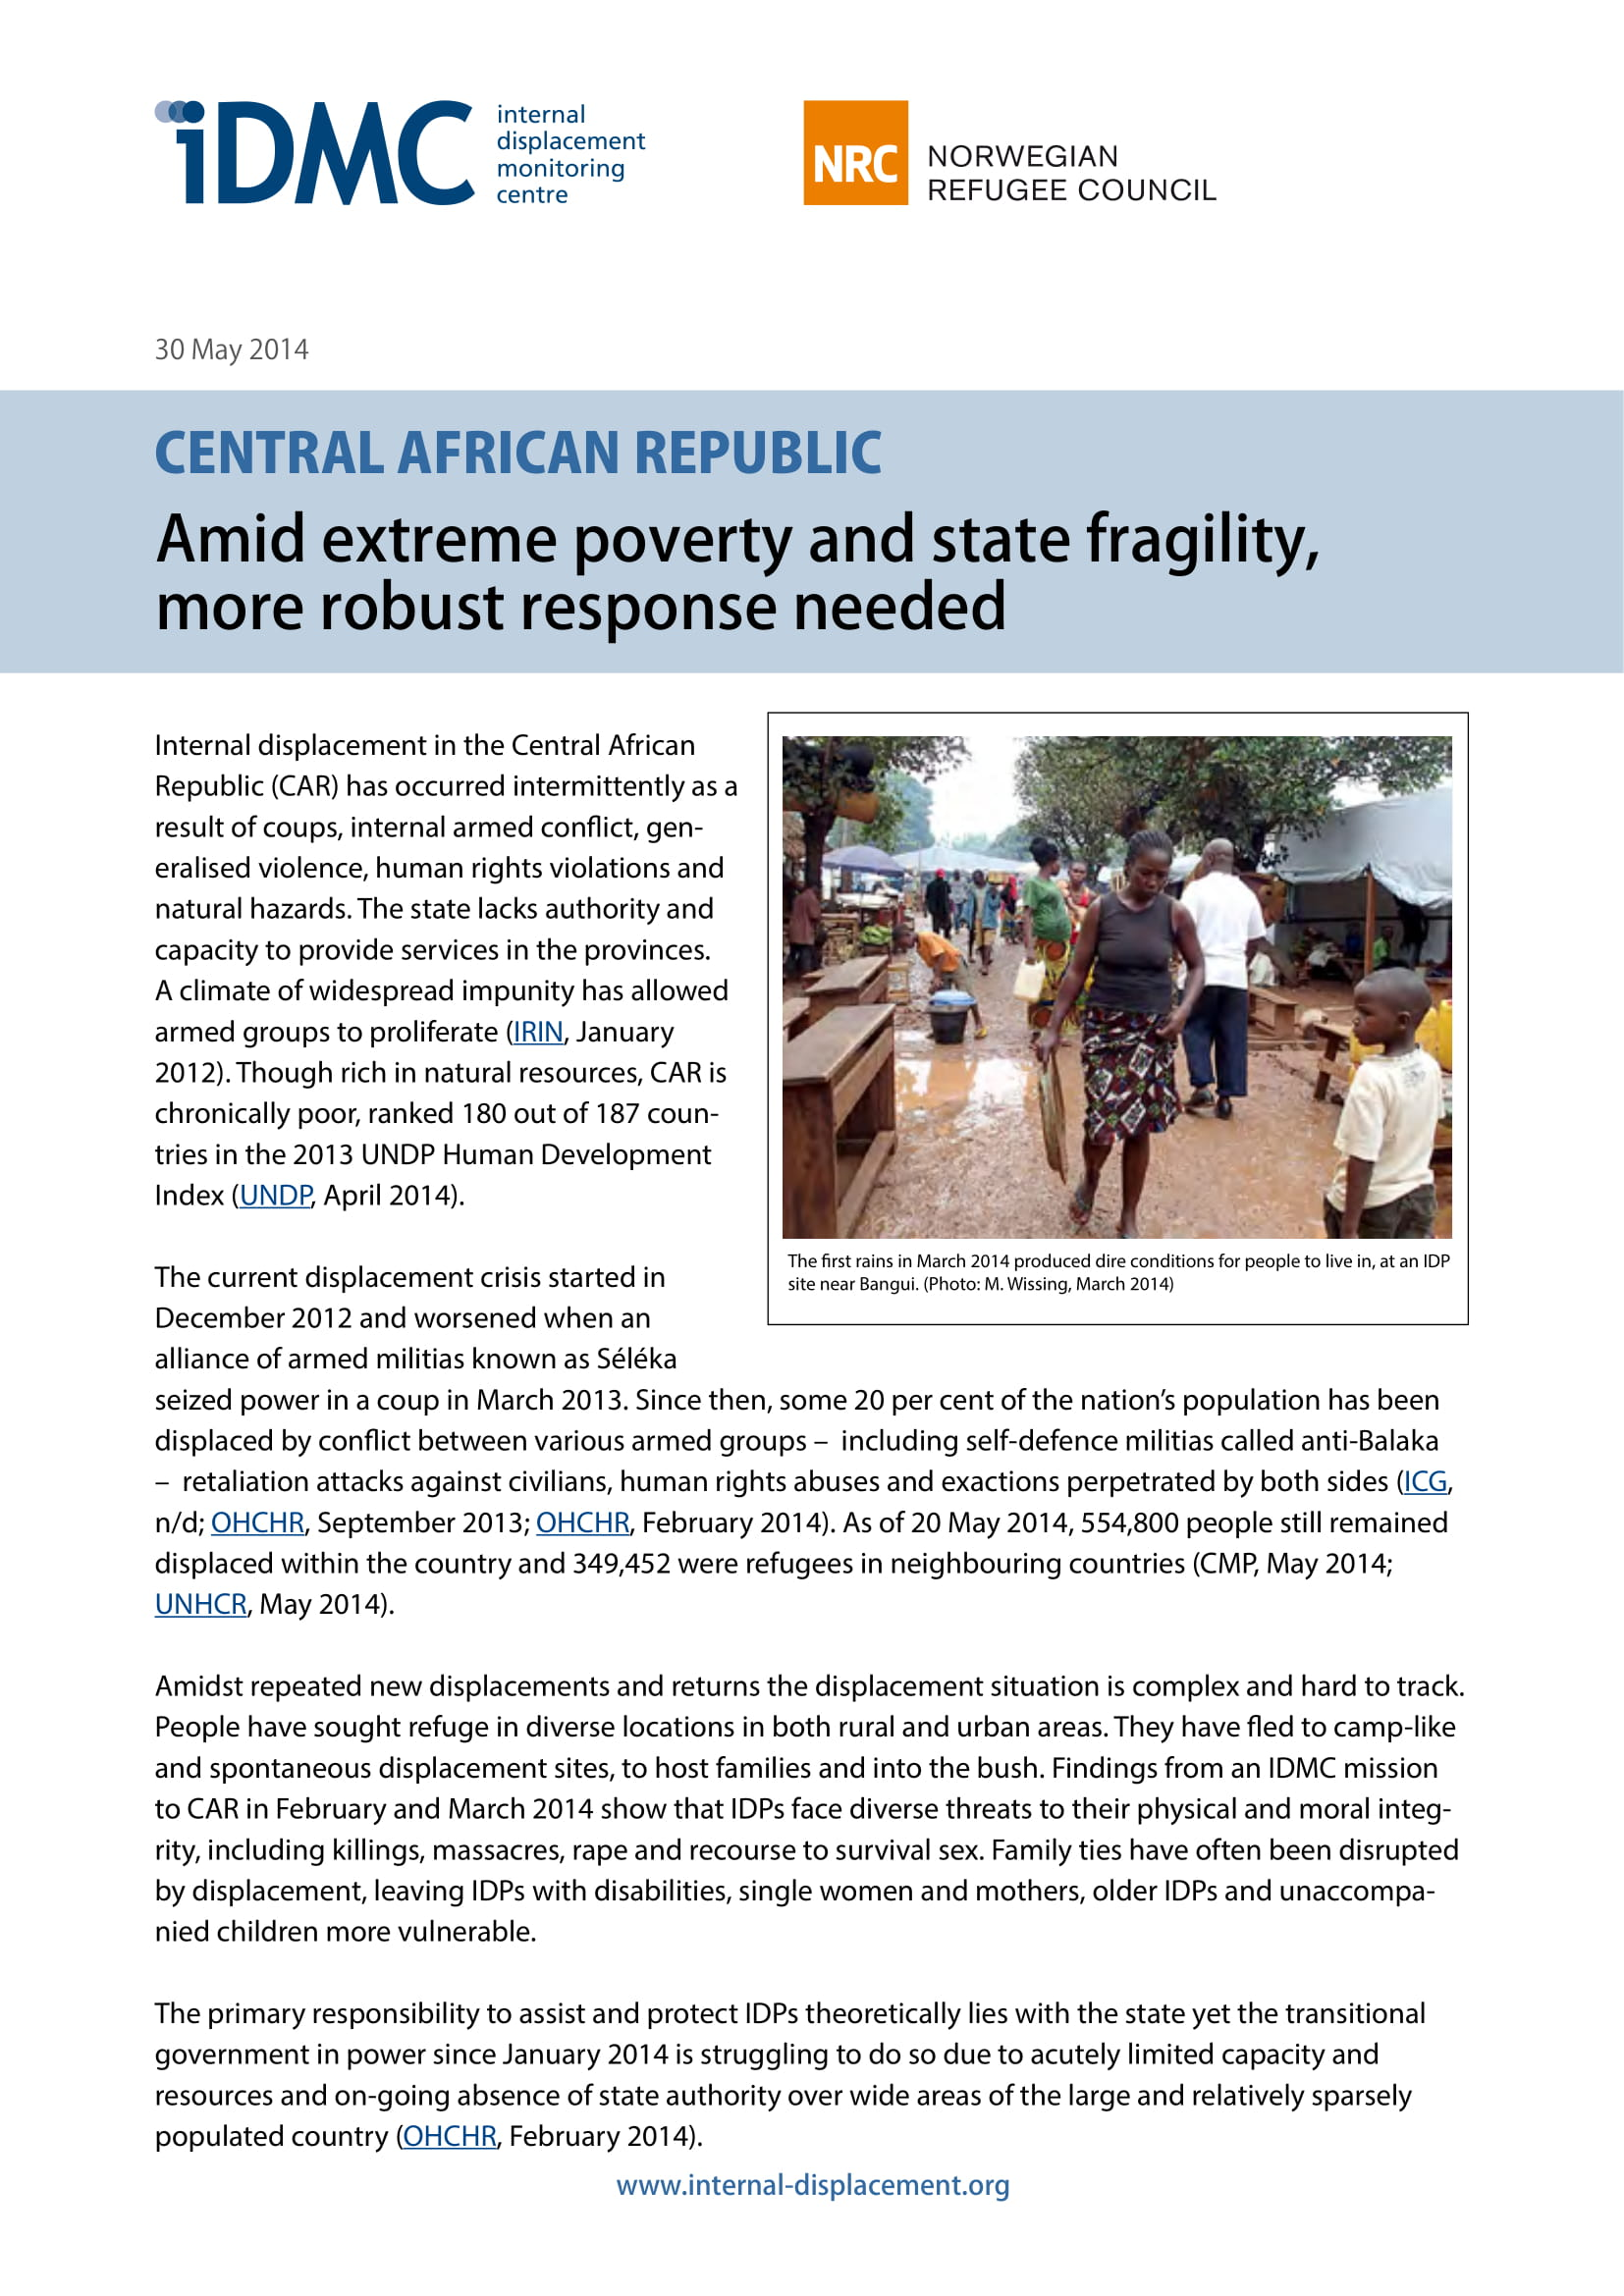 Central African Republic: Amid extreme poverty and state fragility, more robust response needed